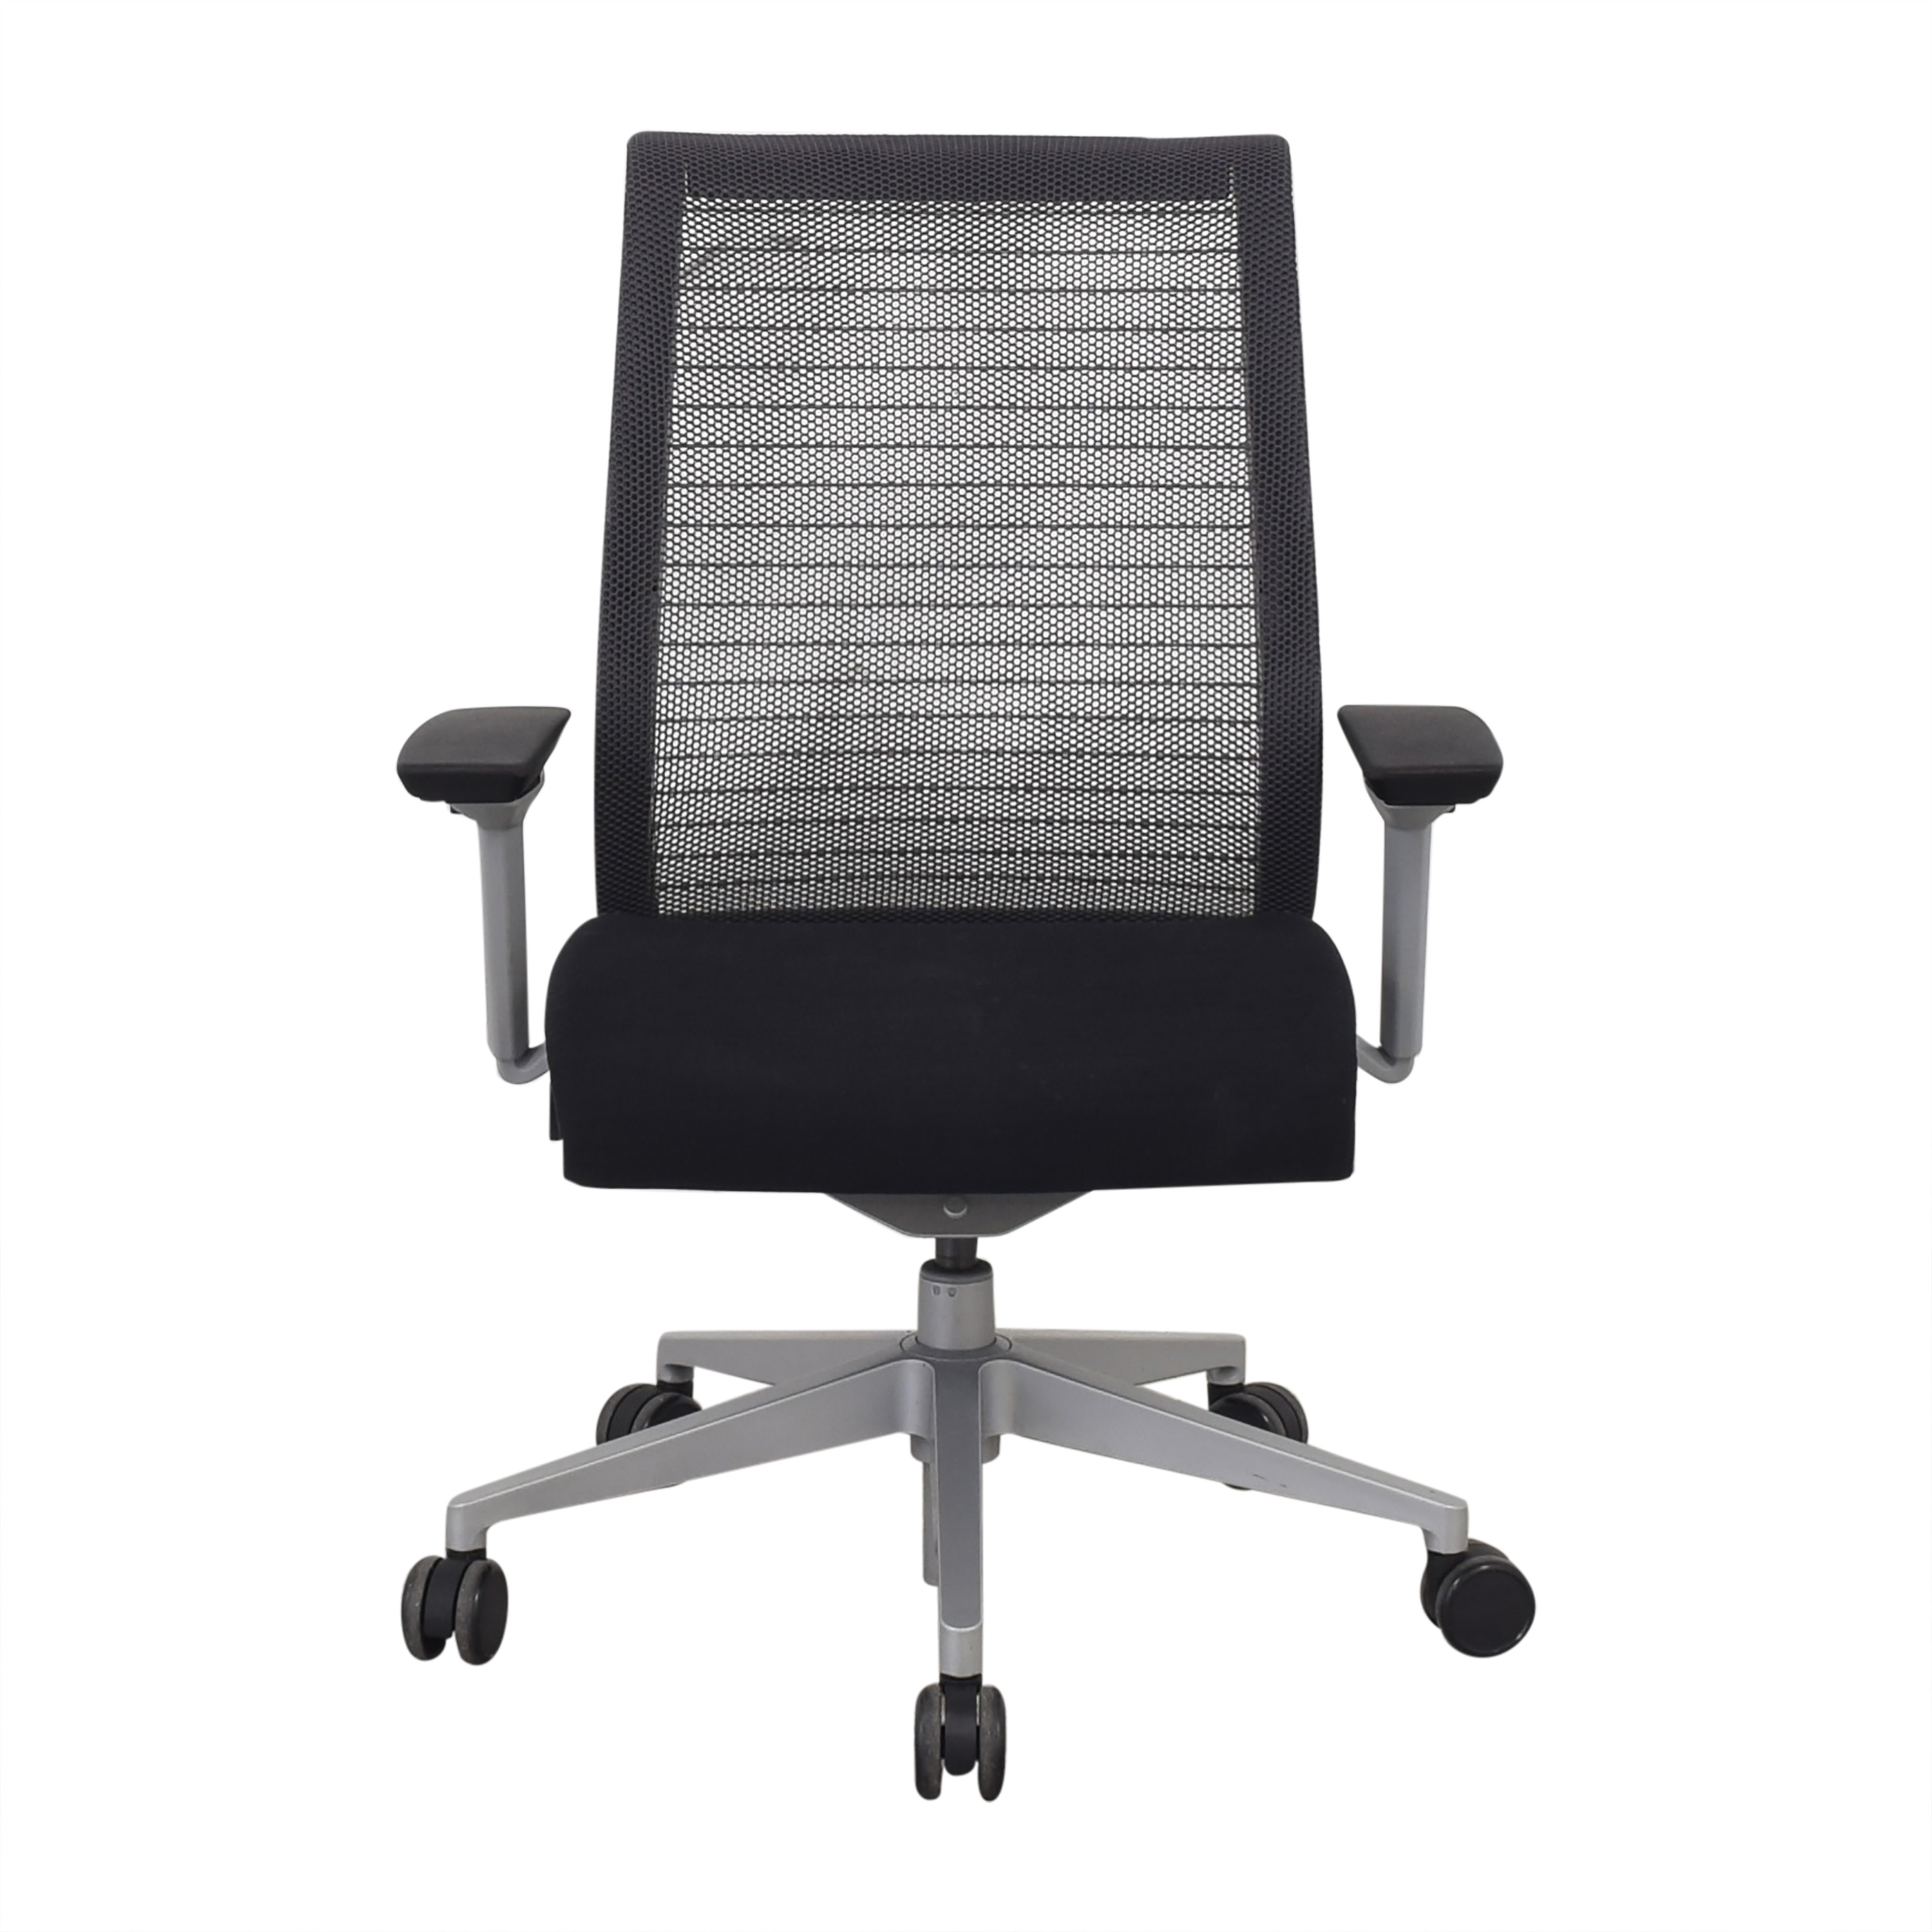 Steelcase Steelcase Cobi Swivel Chair Home Office Chairs